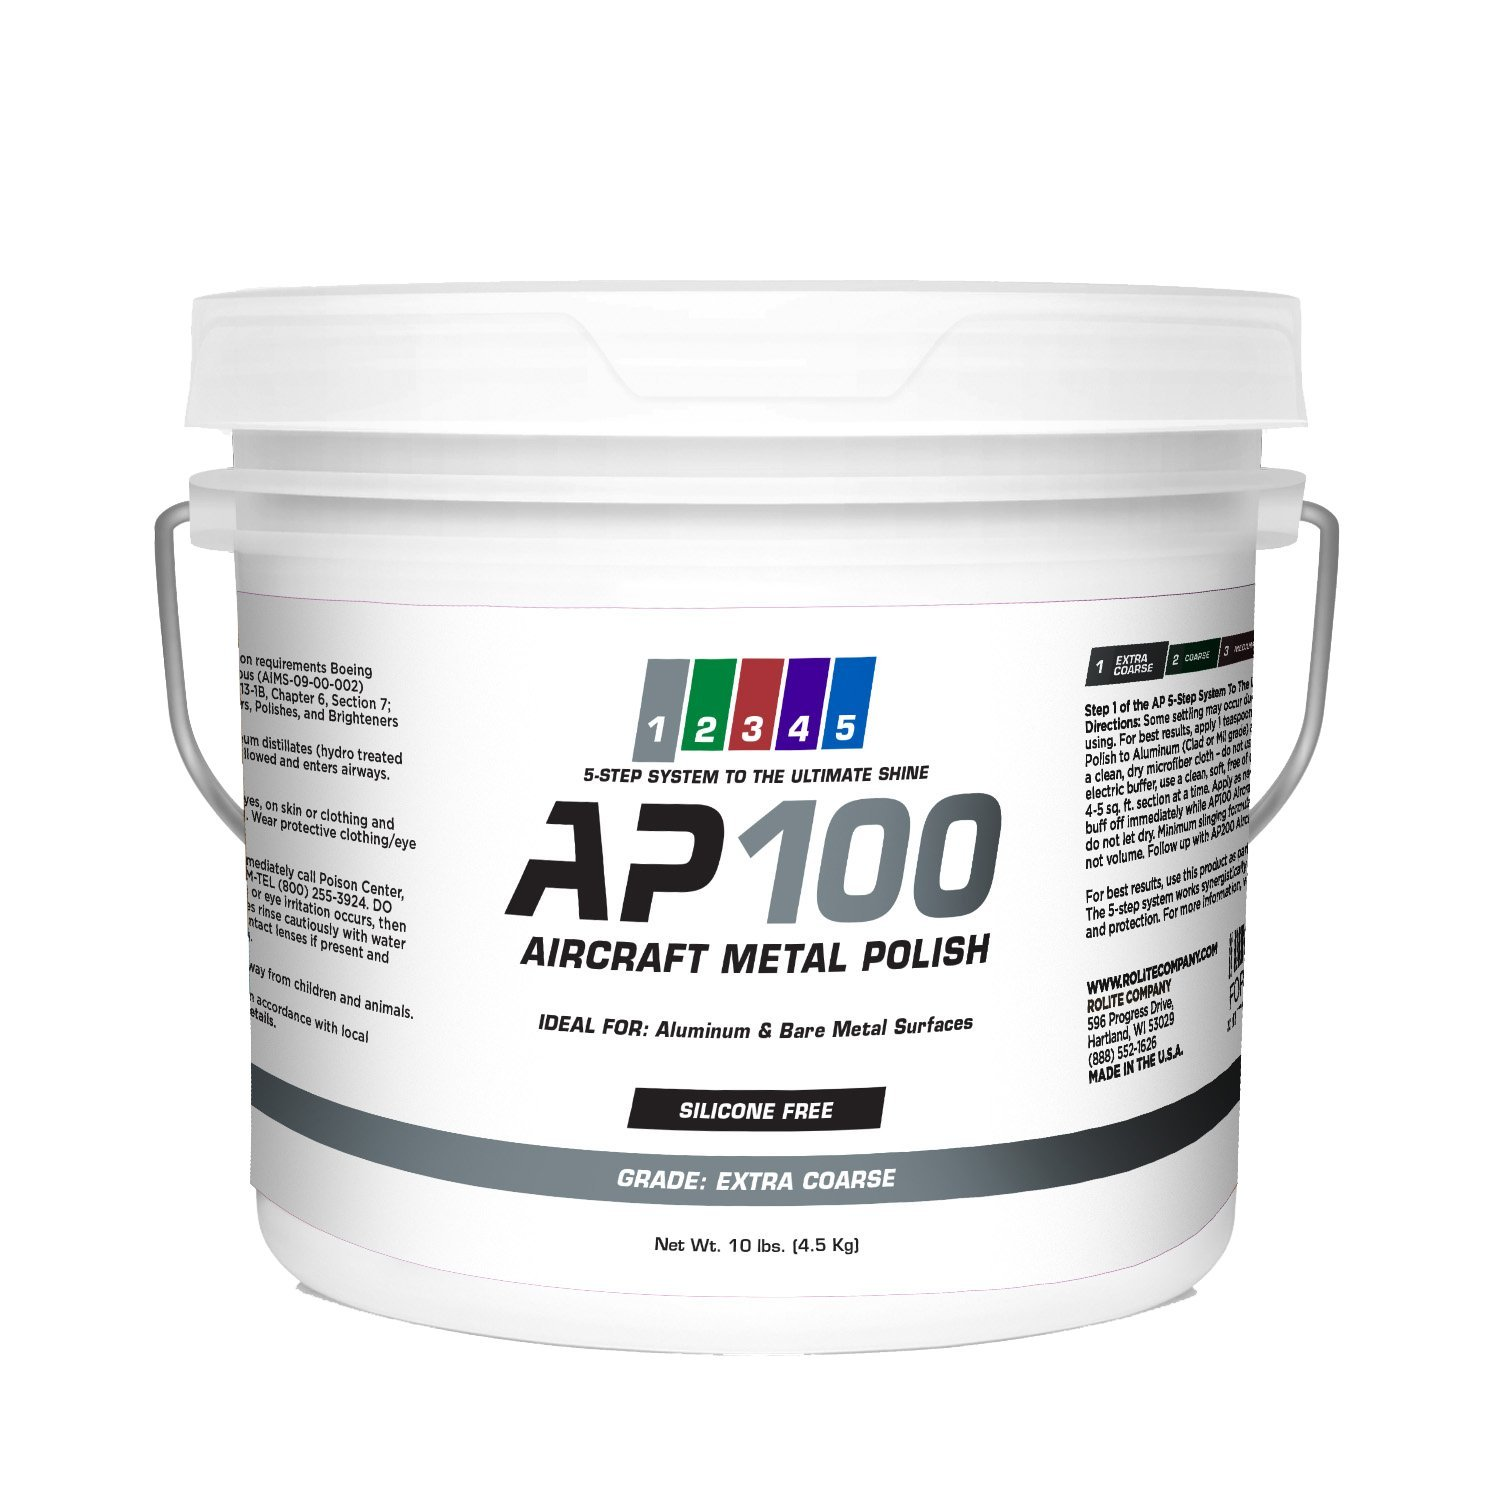 AP100 Aircraft Metal Polish (10lb) - Extra Coarse - for Airplane Aluminum & Bare Metal Surfaces, Brightwork, Meets Boeing & Airbus Requirements